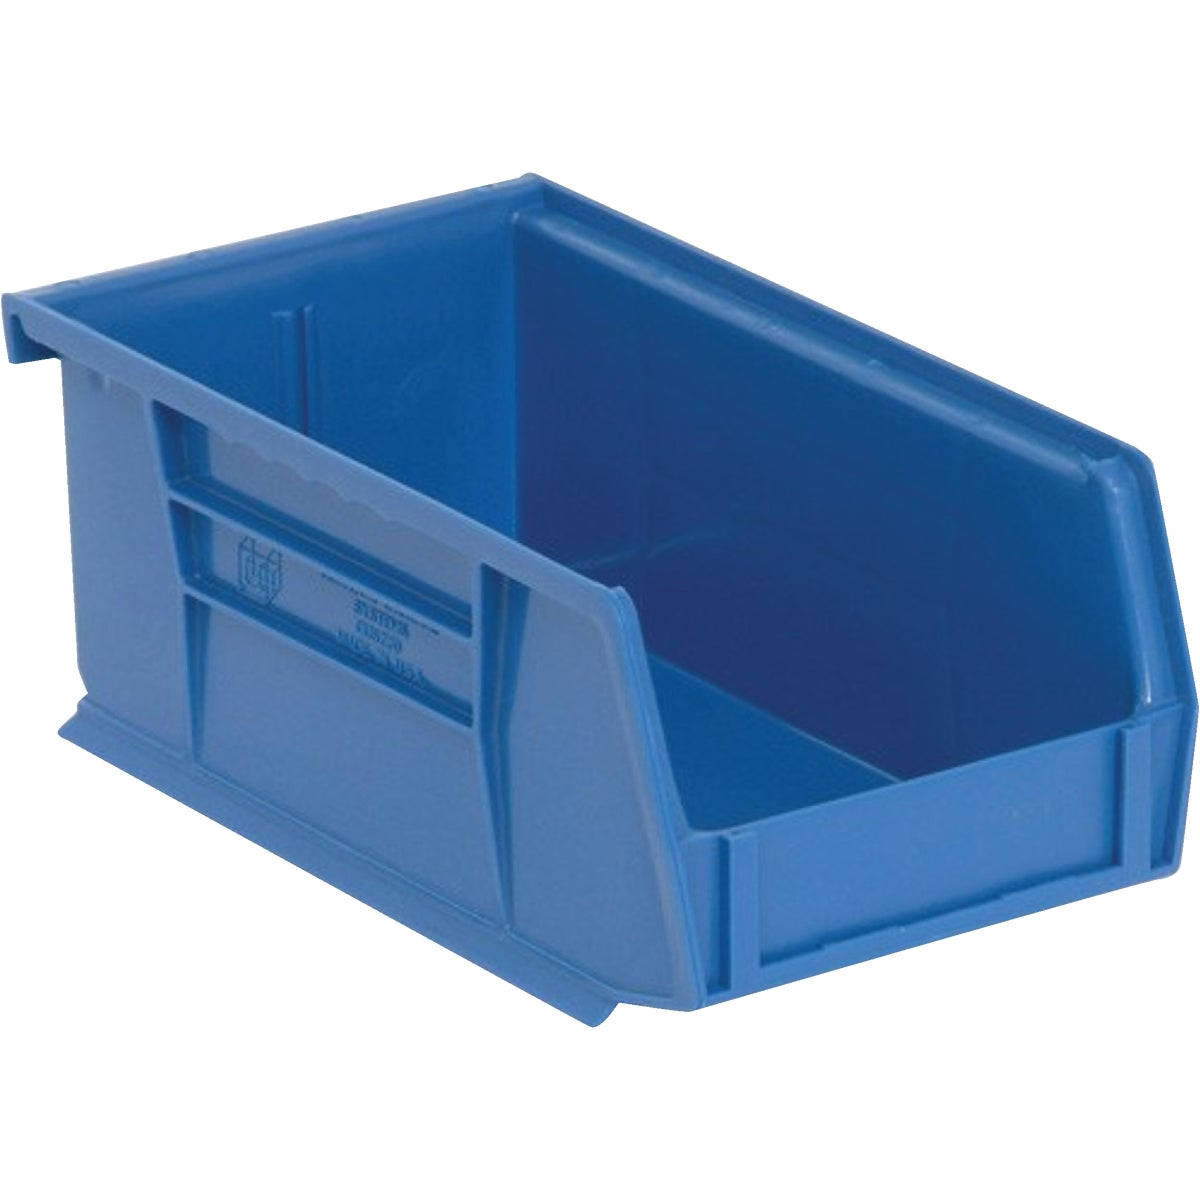 STORAGE BIN SMALL YELLOW - BIN-7 by Stack On Products